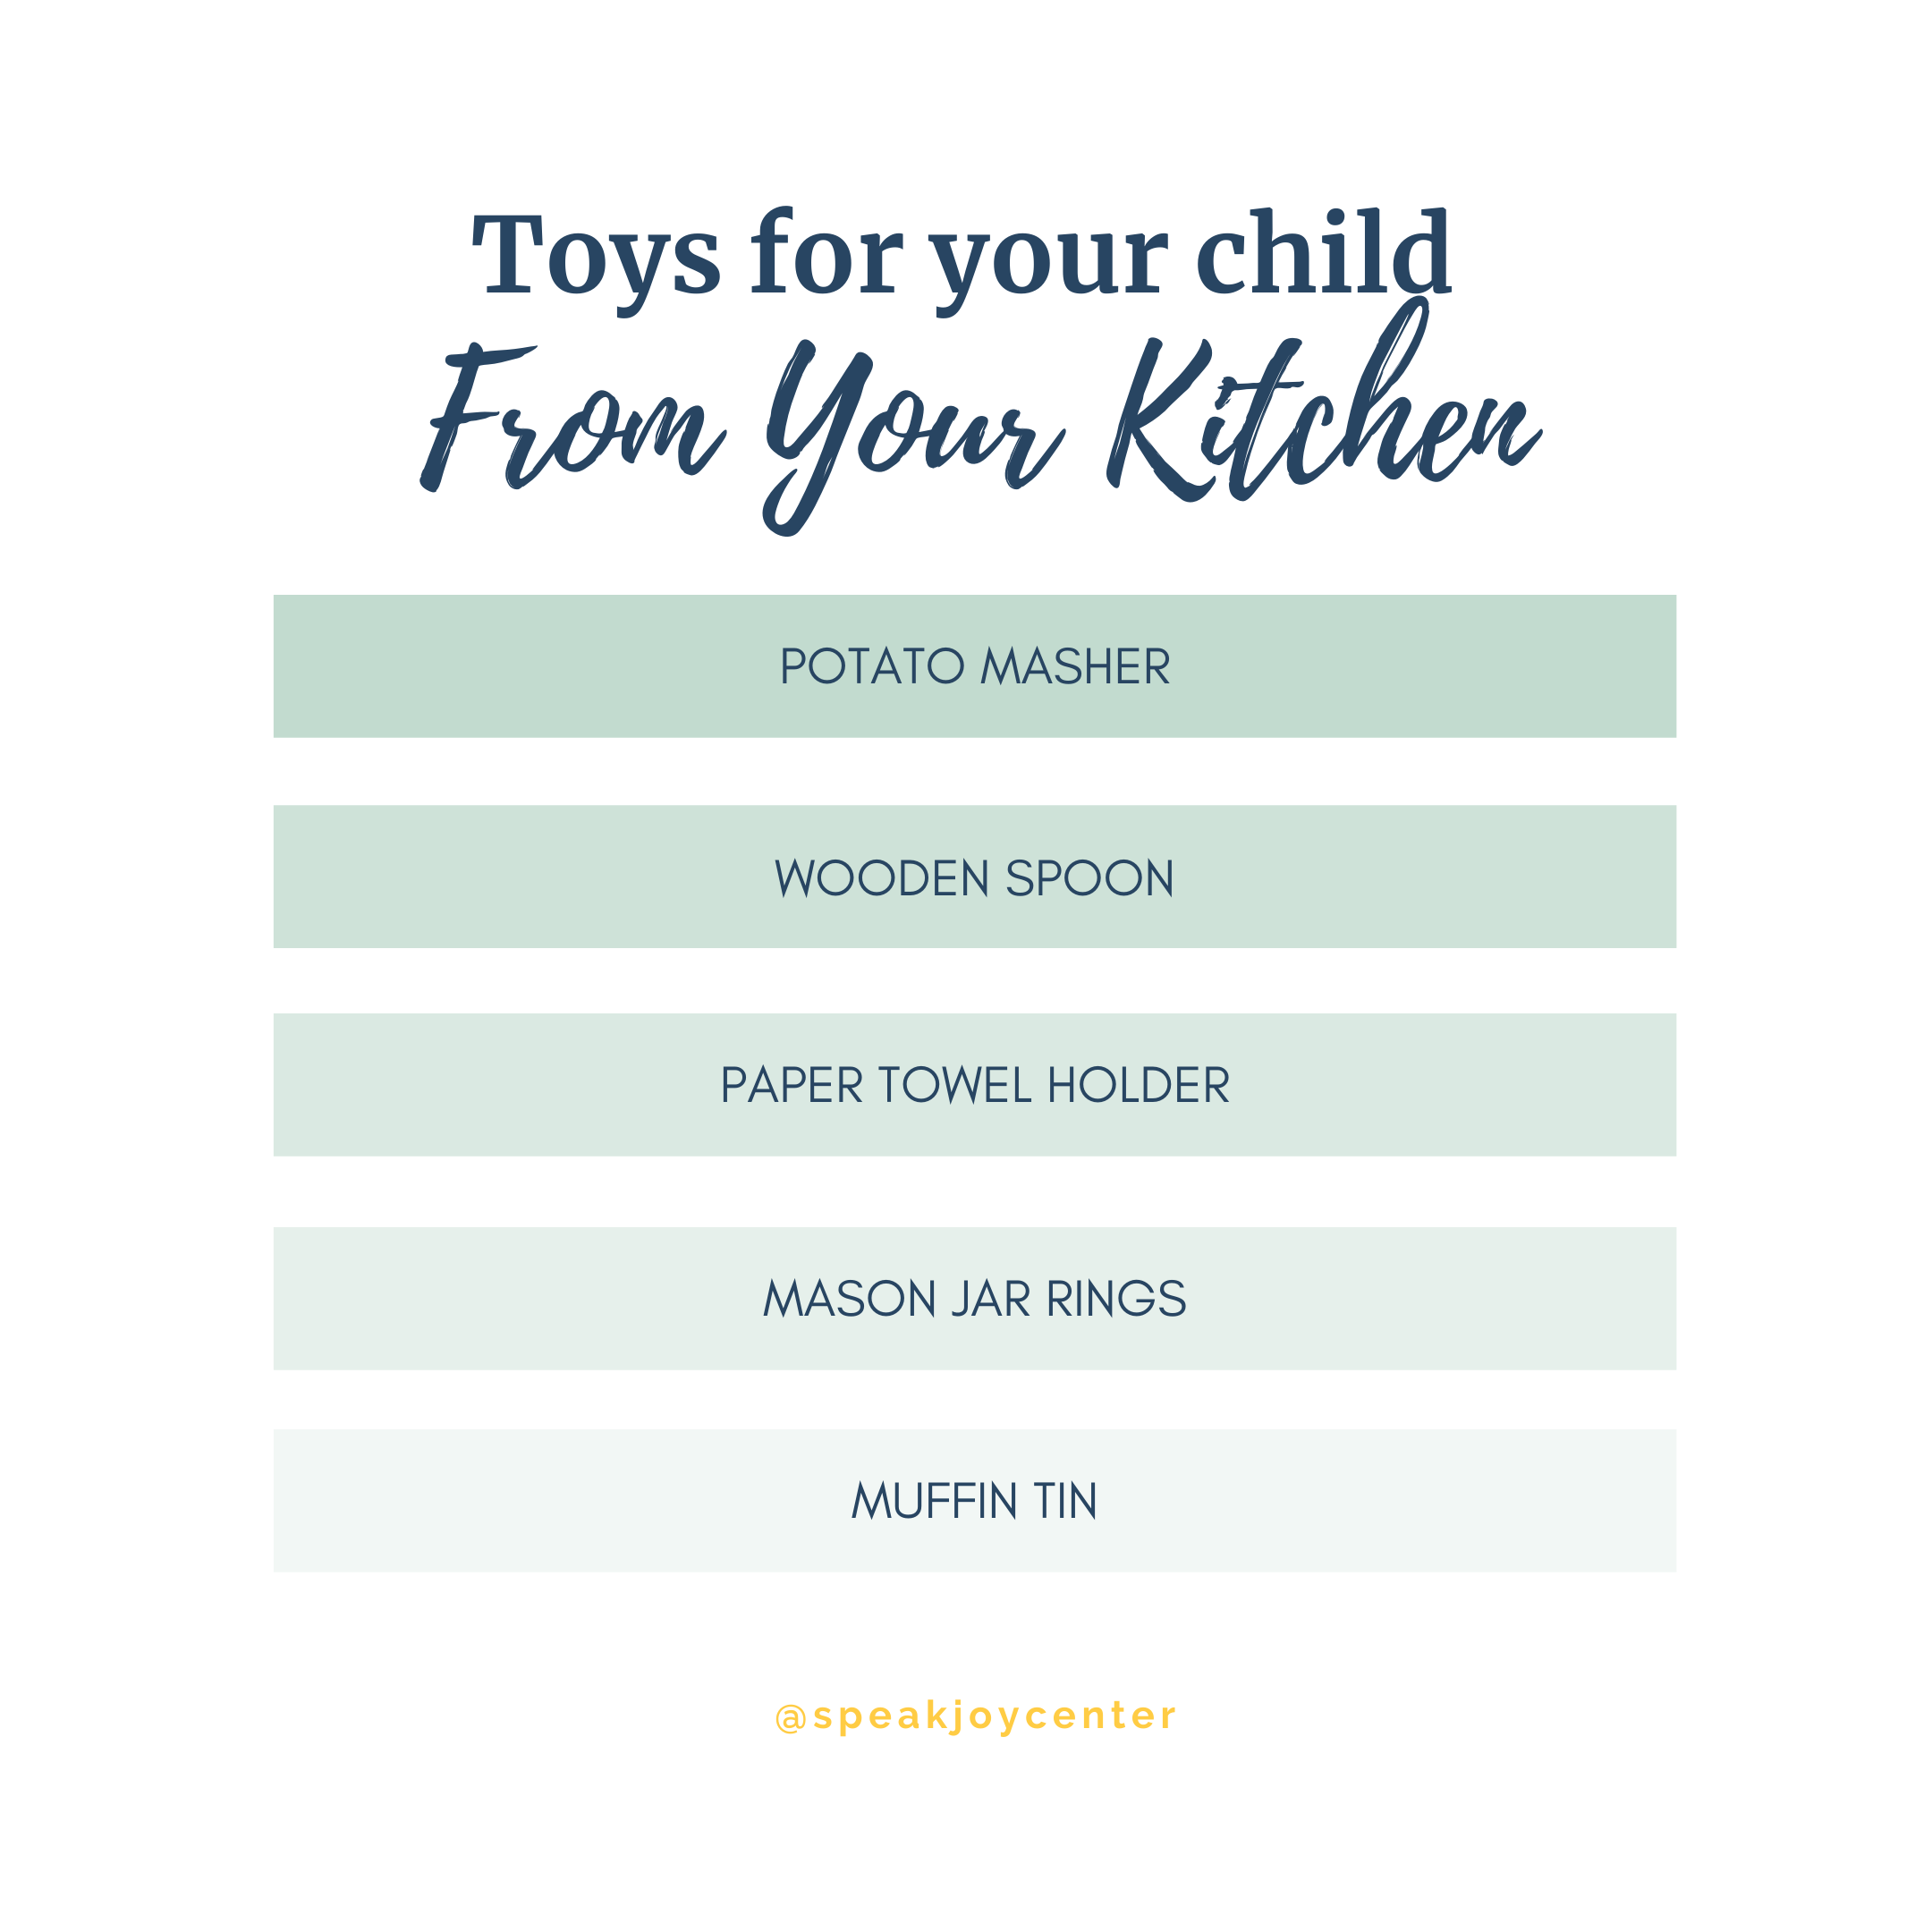 find toys for your child in your kitchen